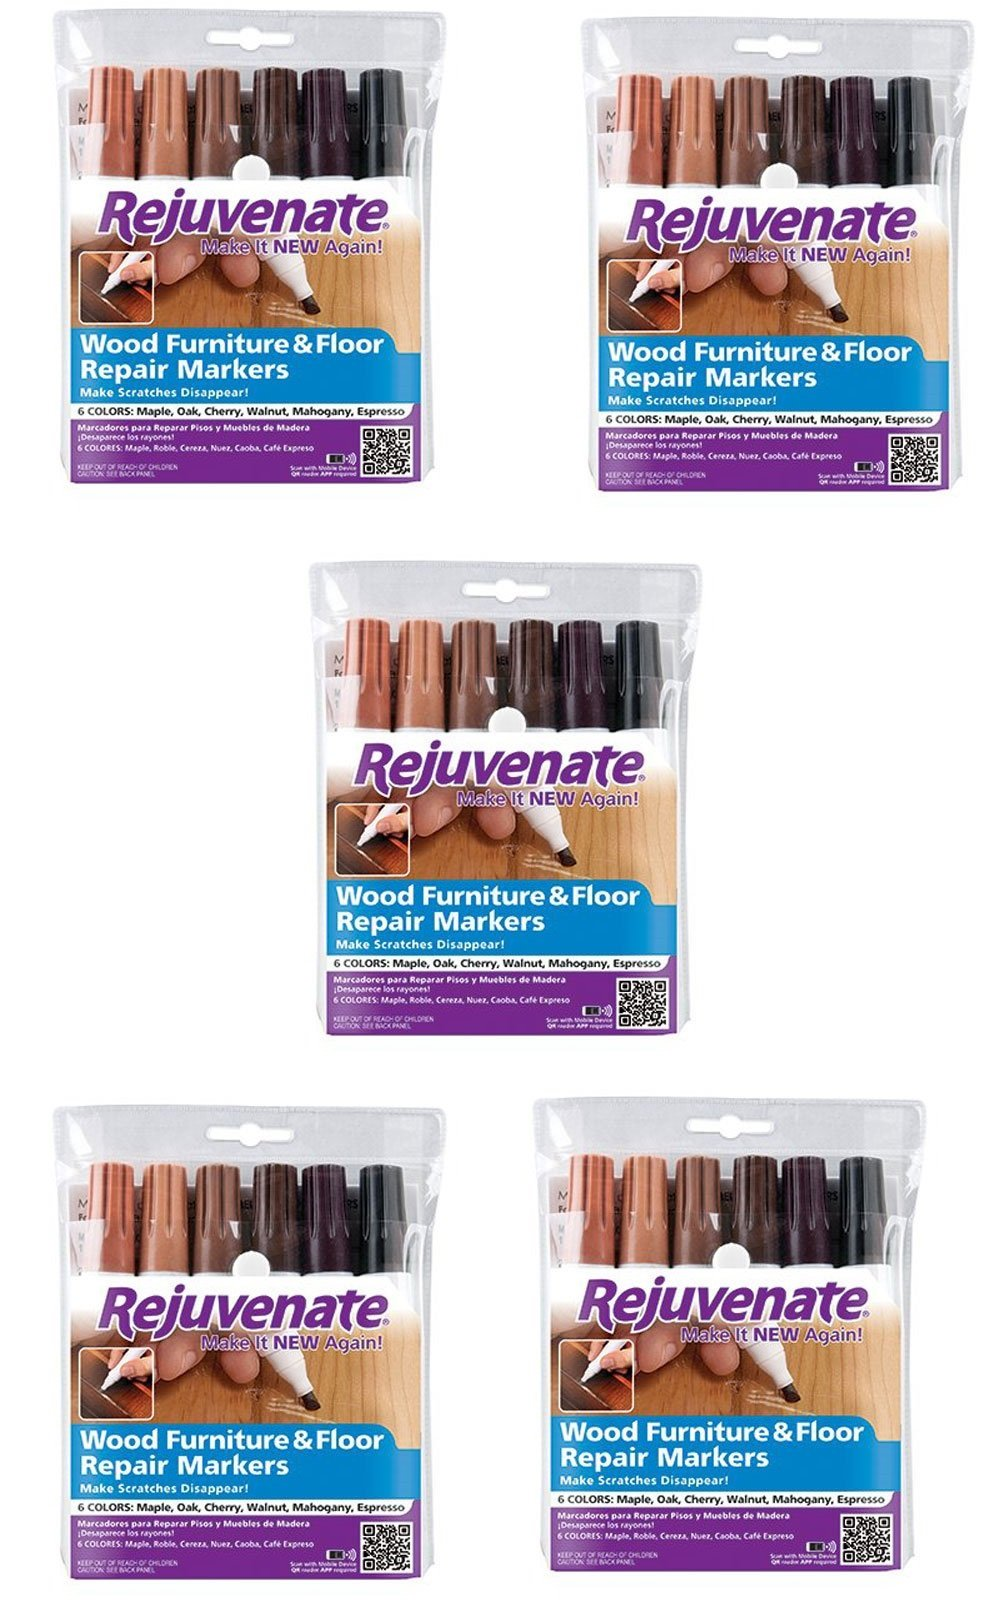 Rejuvenate Wood Furniture & Floor Repair Markers Make Scratches Disappear in Any Color Wood - 6 Colors; Maple, Oak, Cherry, Walnut, Mahogany, Espresso (5 pack)